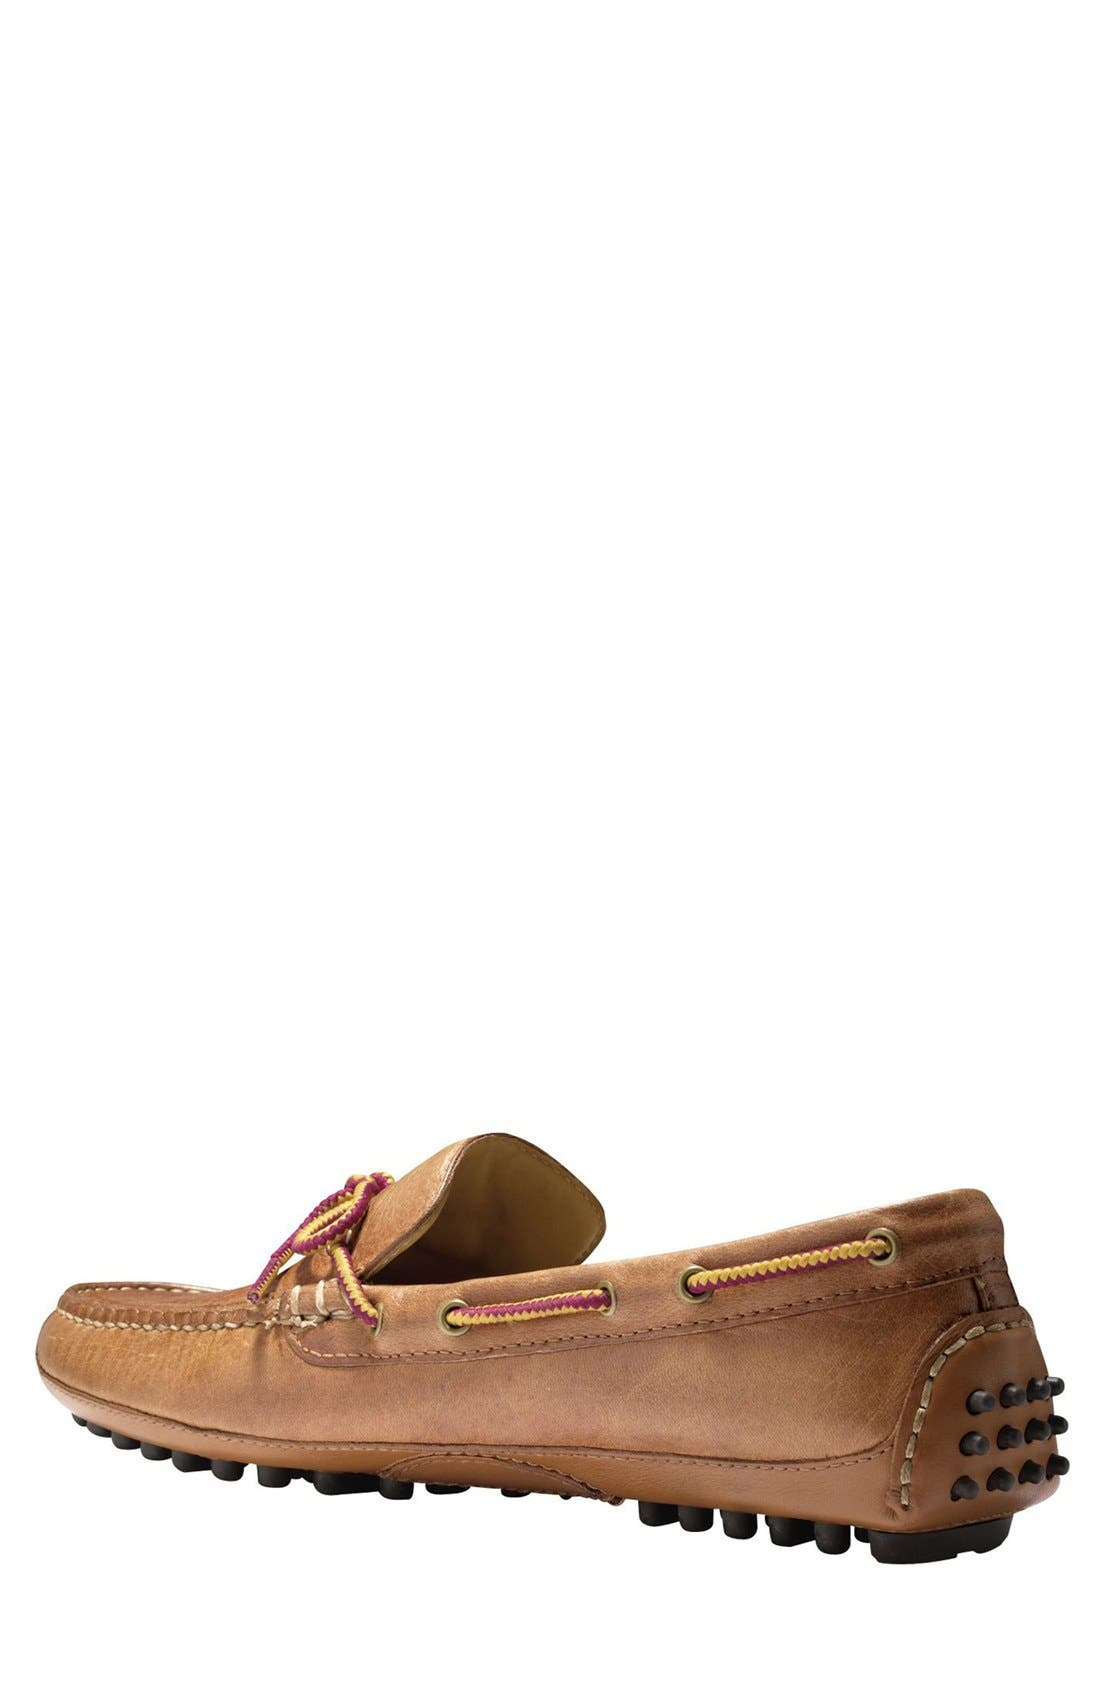 'Grant Canoe Camp' Driving Moccasin,                             Alternate thumbnail 2, color,                             British Tan